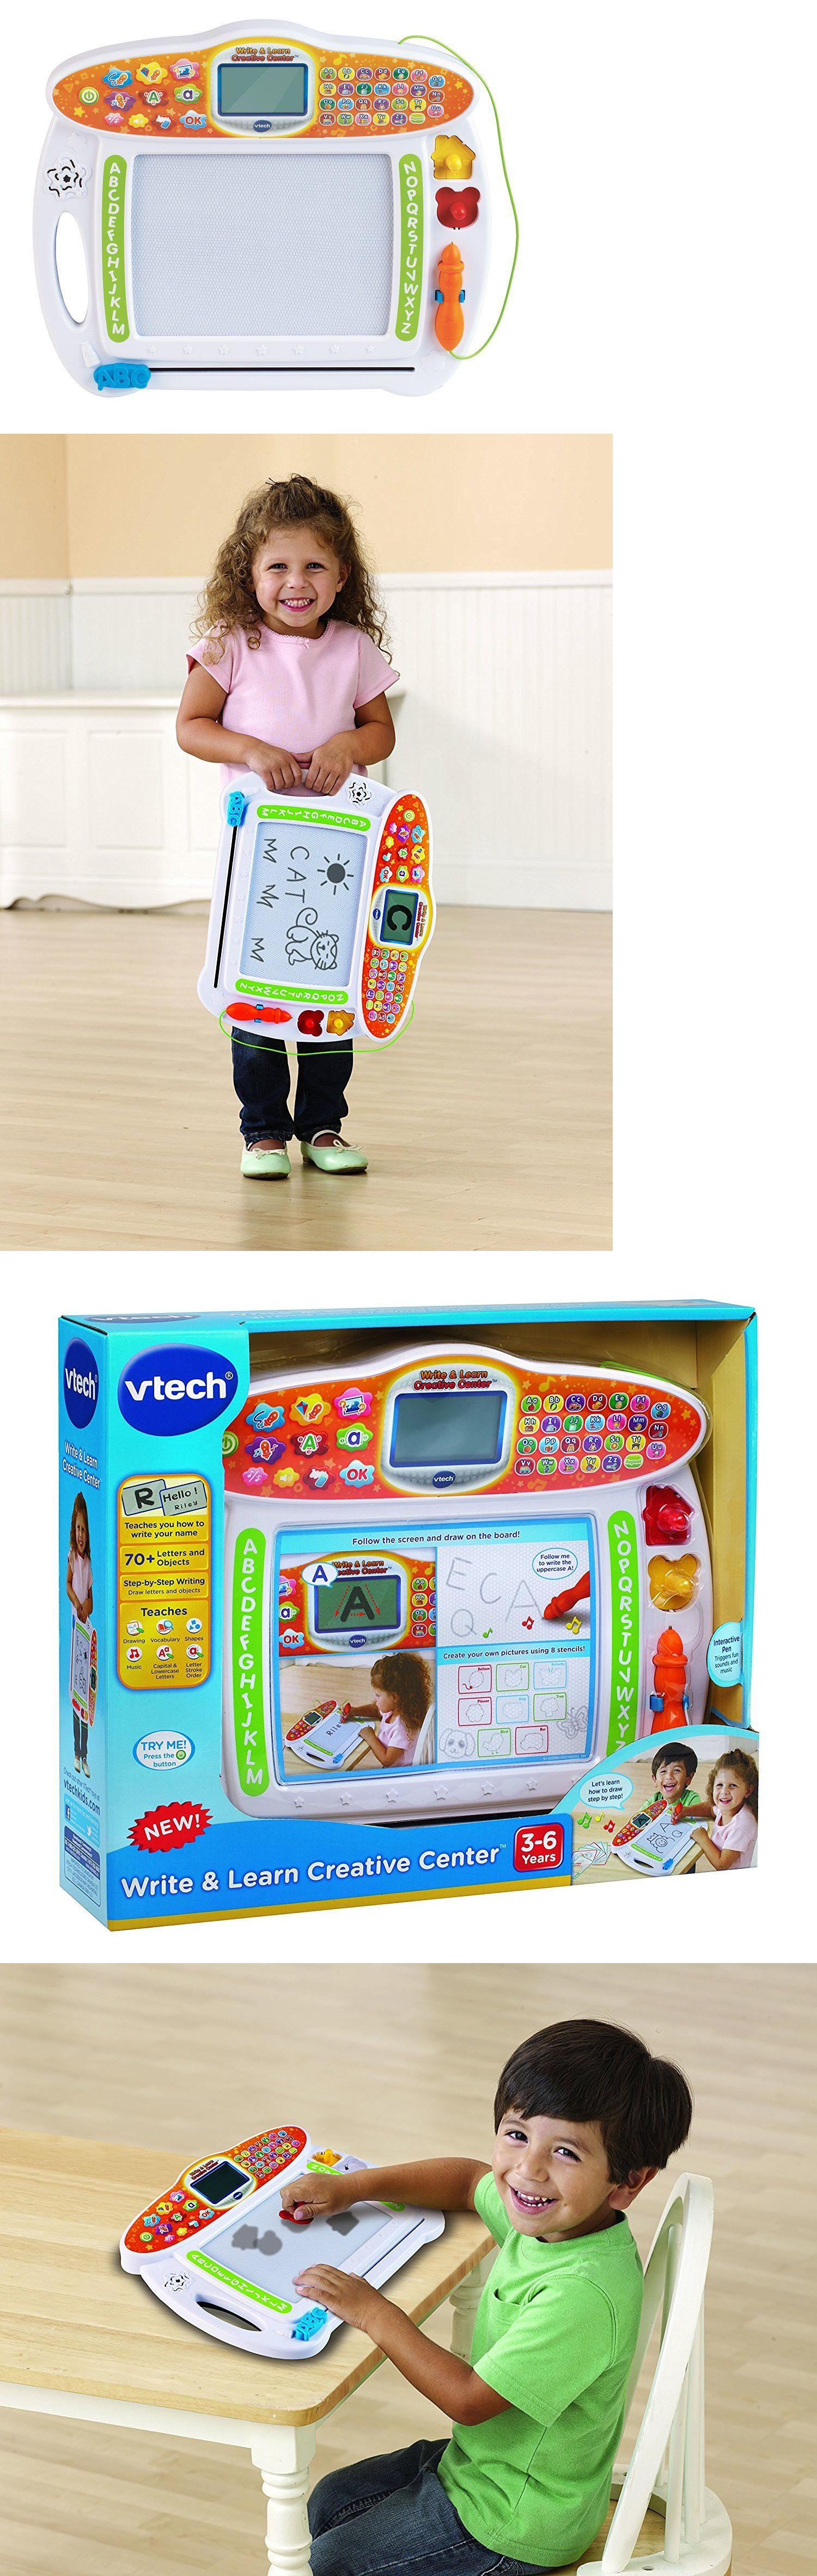 Kids toys images  Learning Systems  Write Learn Creative Center Vtech New